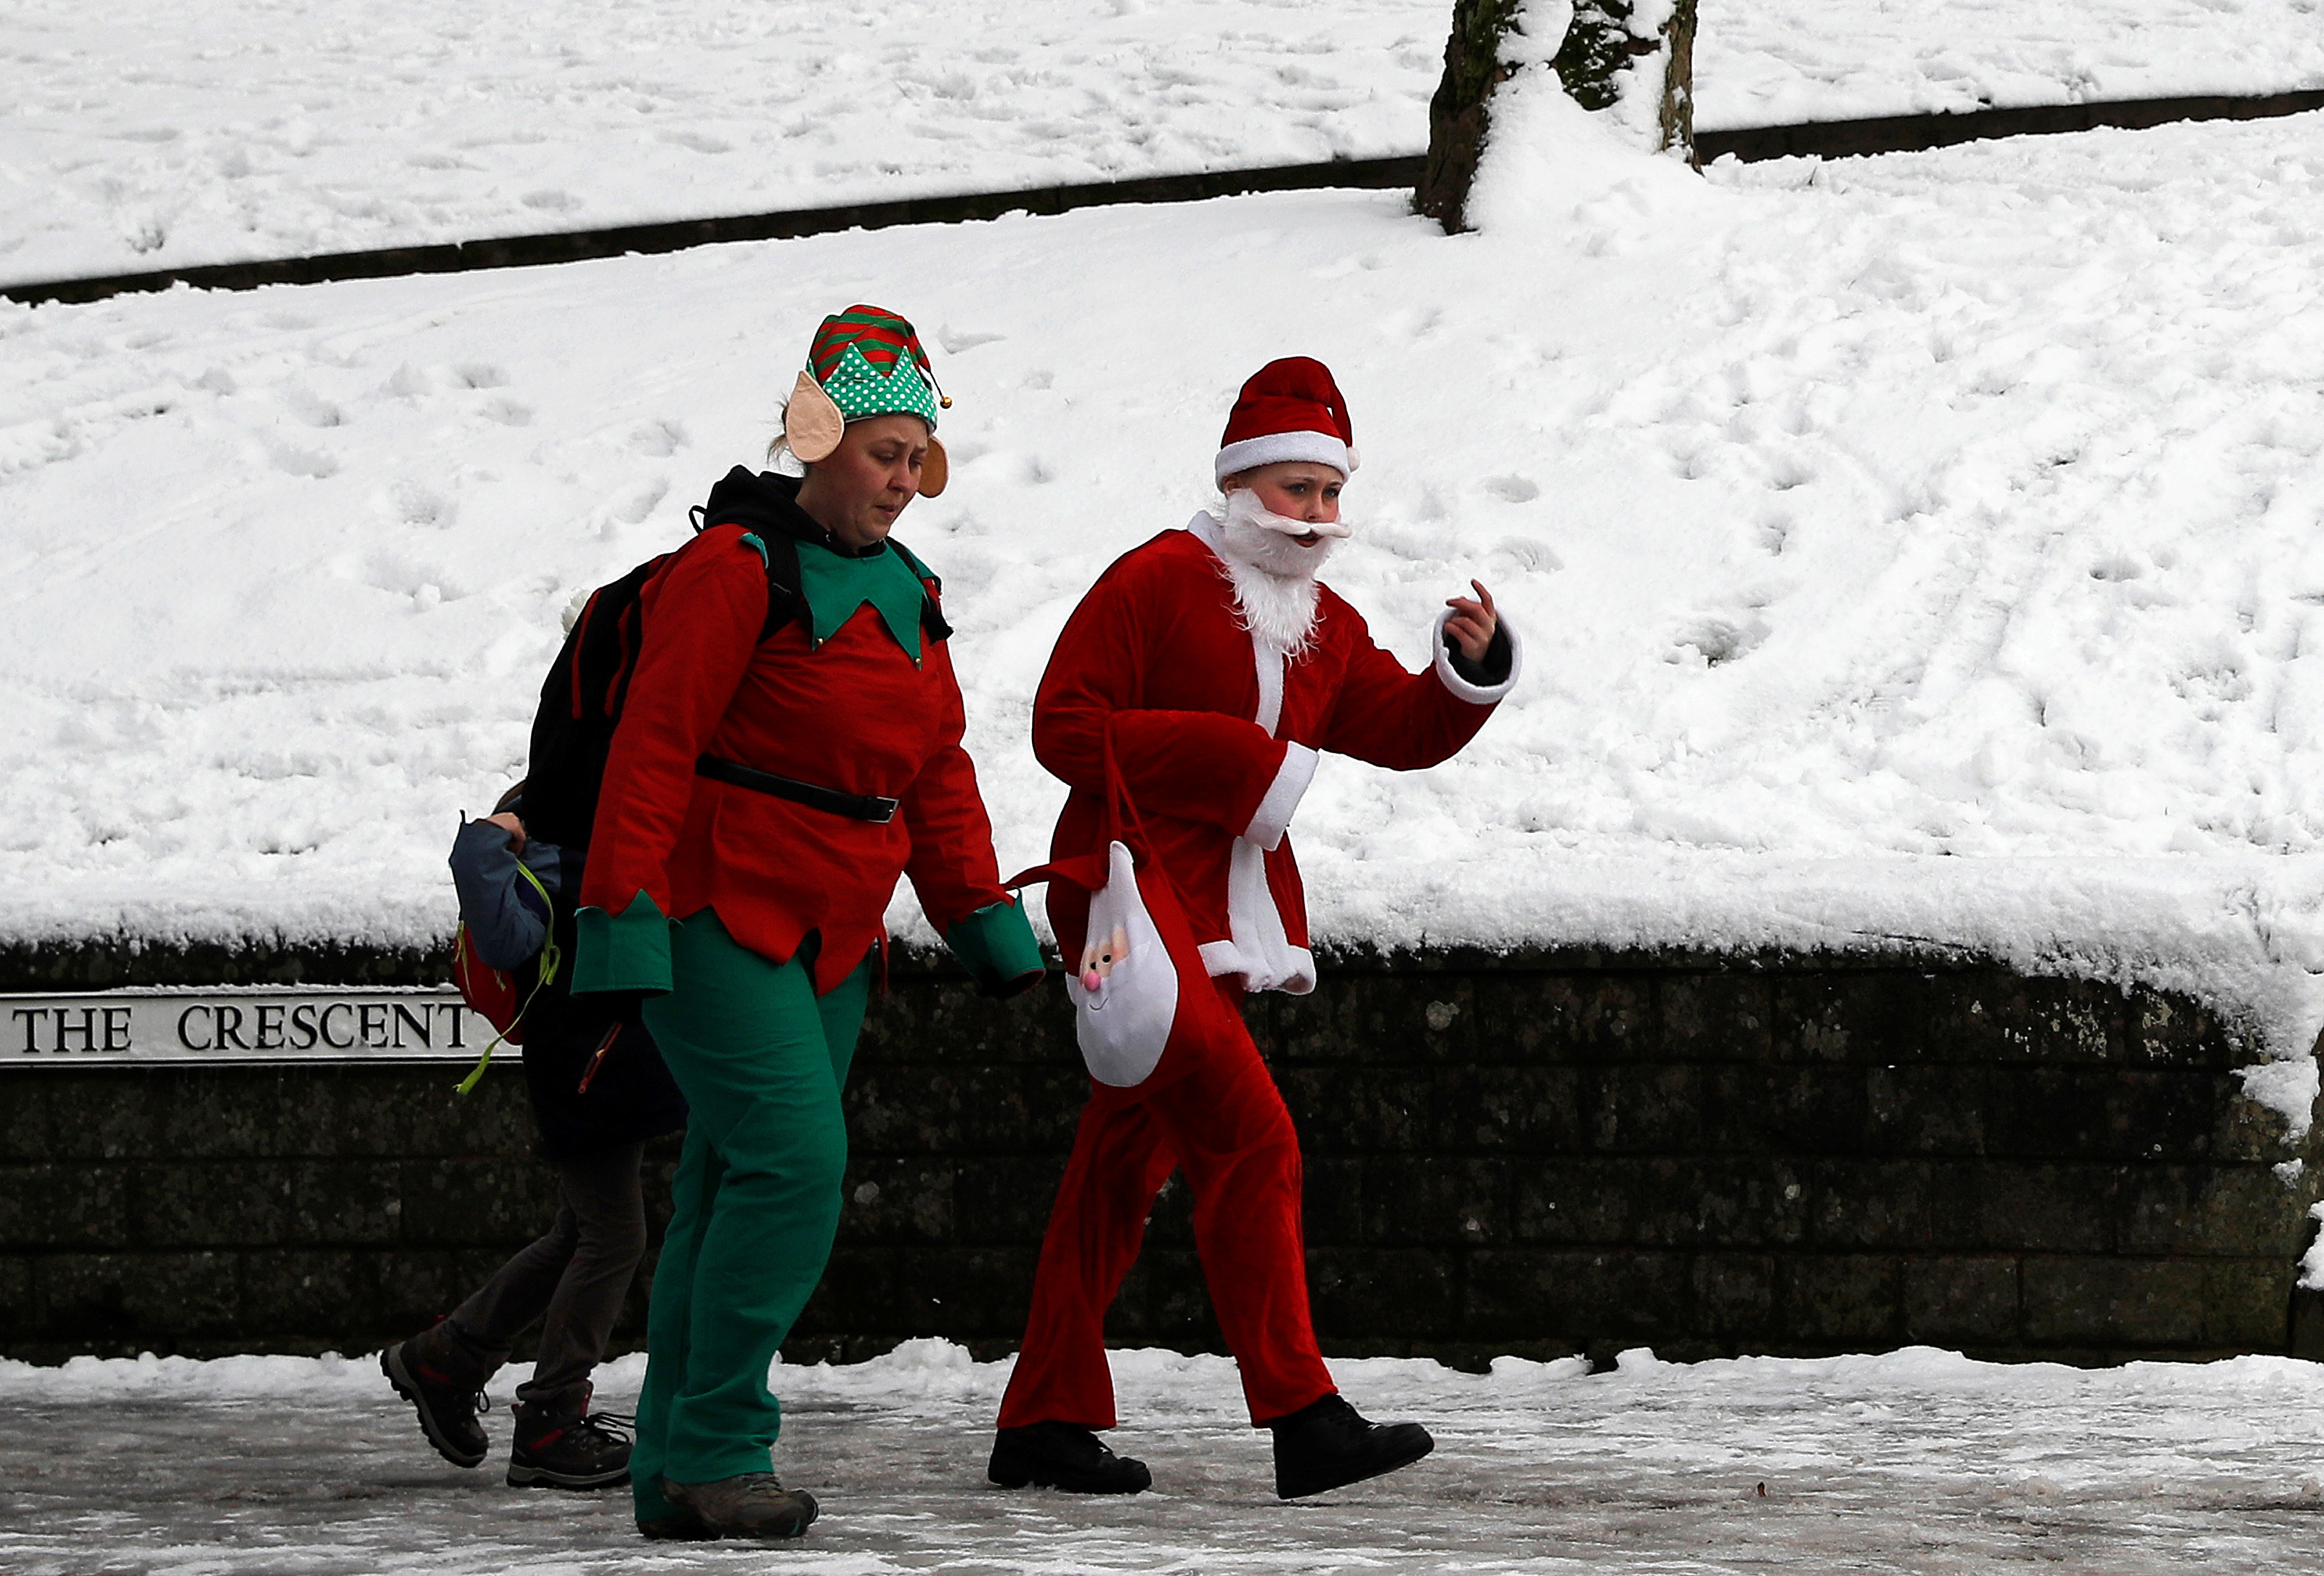 Women in festive fancy dress walk after a snow fall in Buxton, Britain December 9, 2017. Picture taken December 9, 2017. REUTERS/Darren Staples - RC170049A4D0